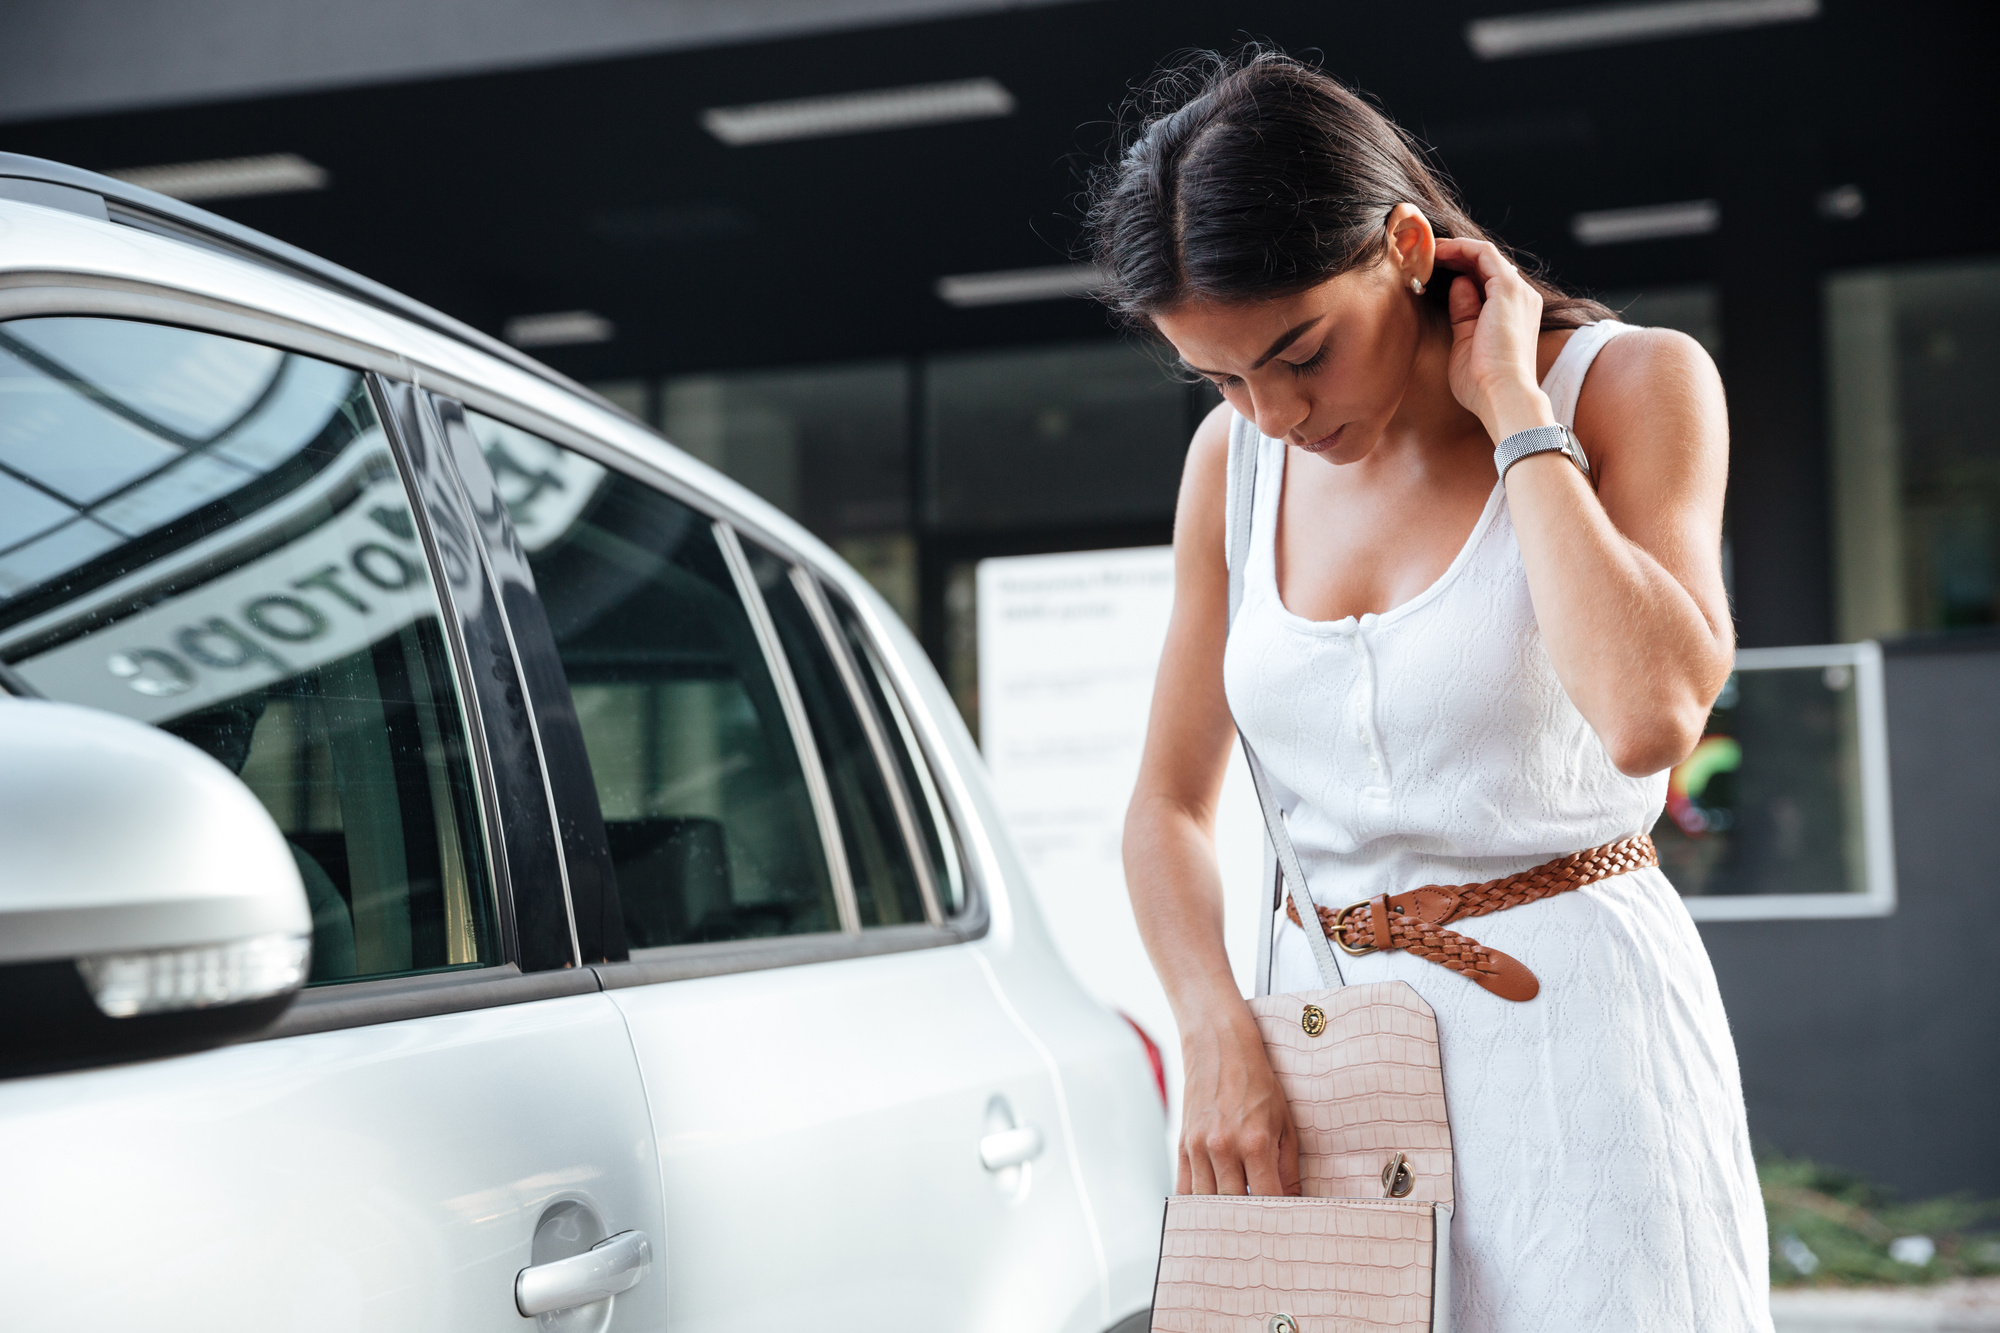 The 10 Weirdest Places To Look For Lost Car Keys Weirdomatic